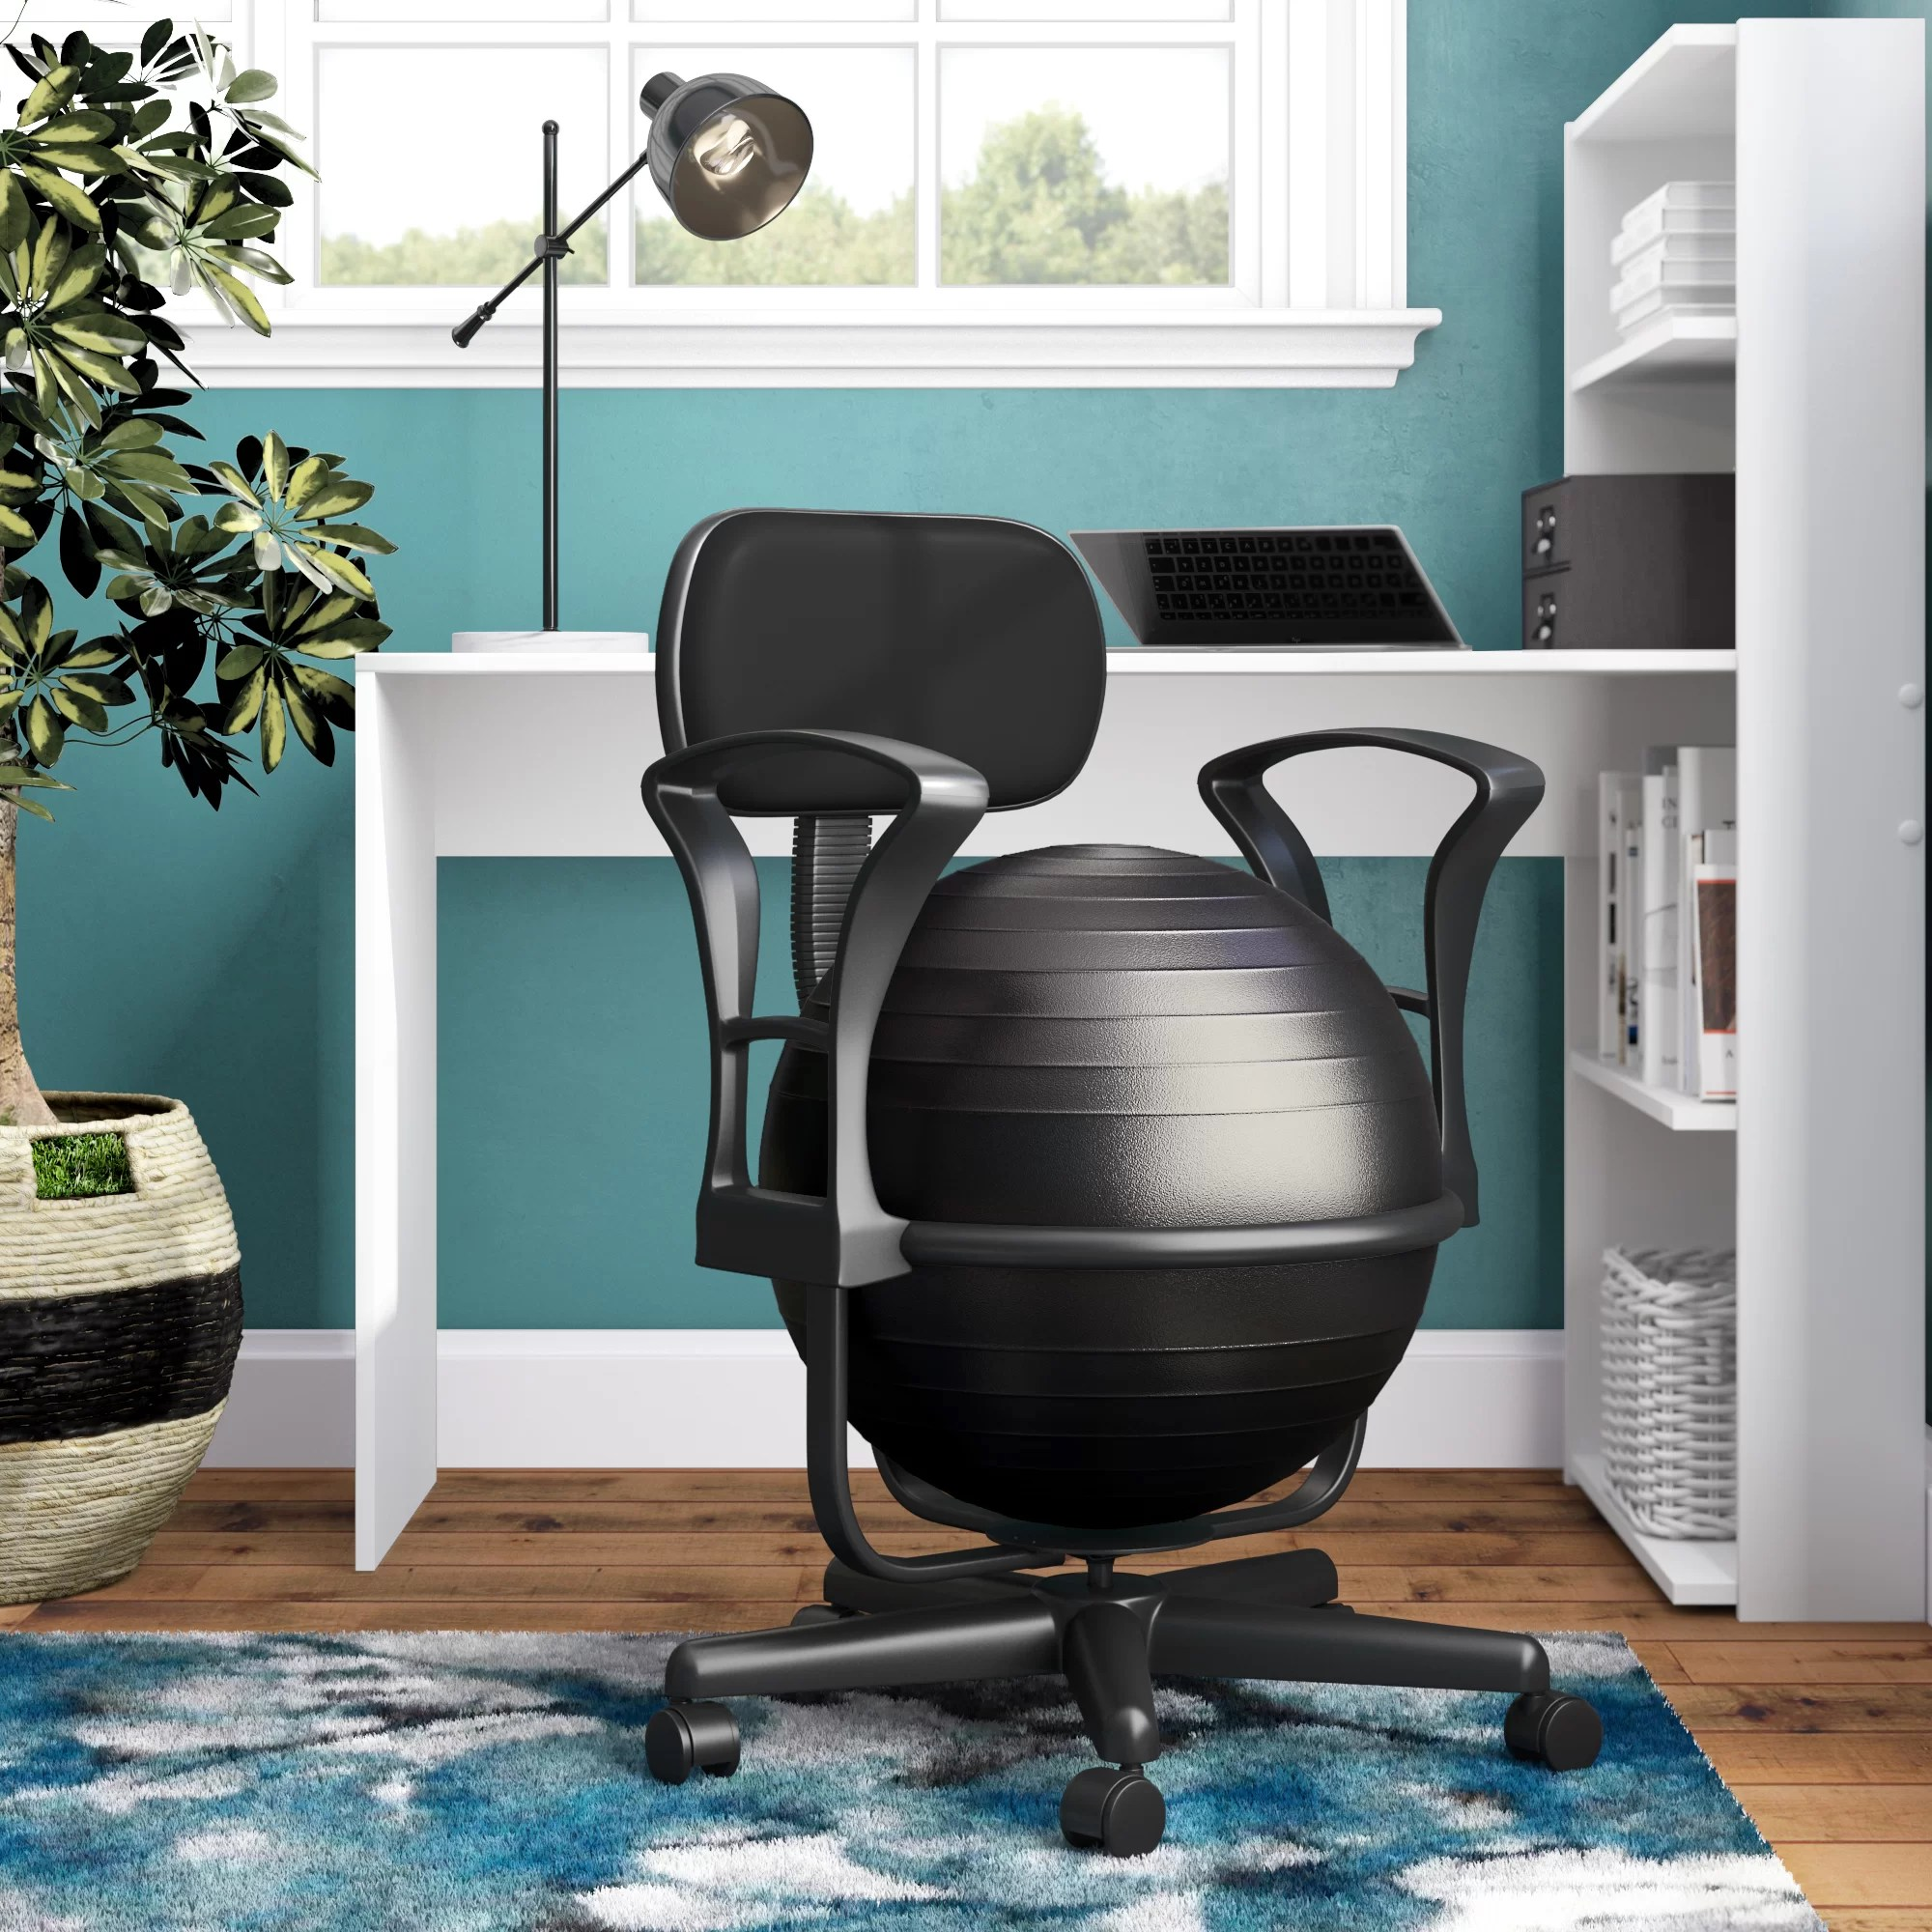 Garage Seat Lens Exercise Ball Chair